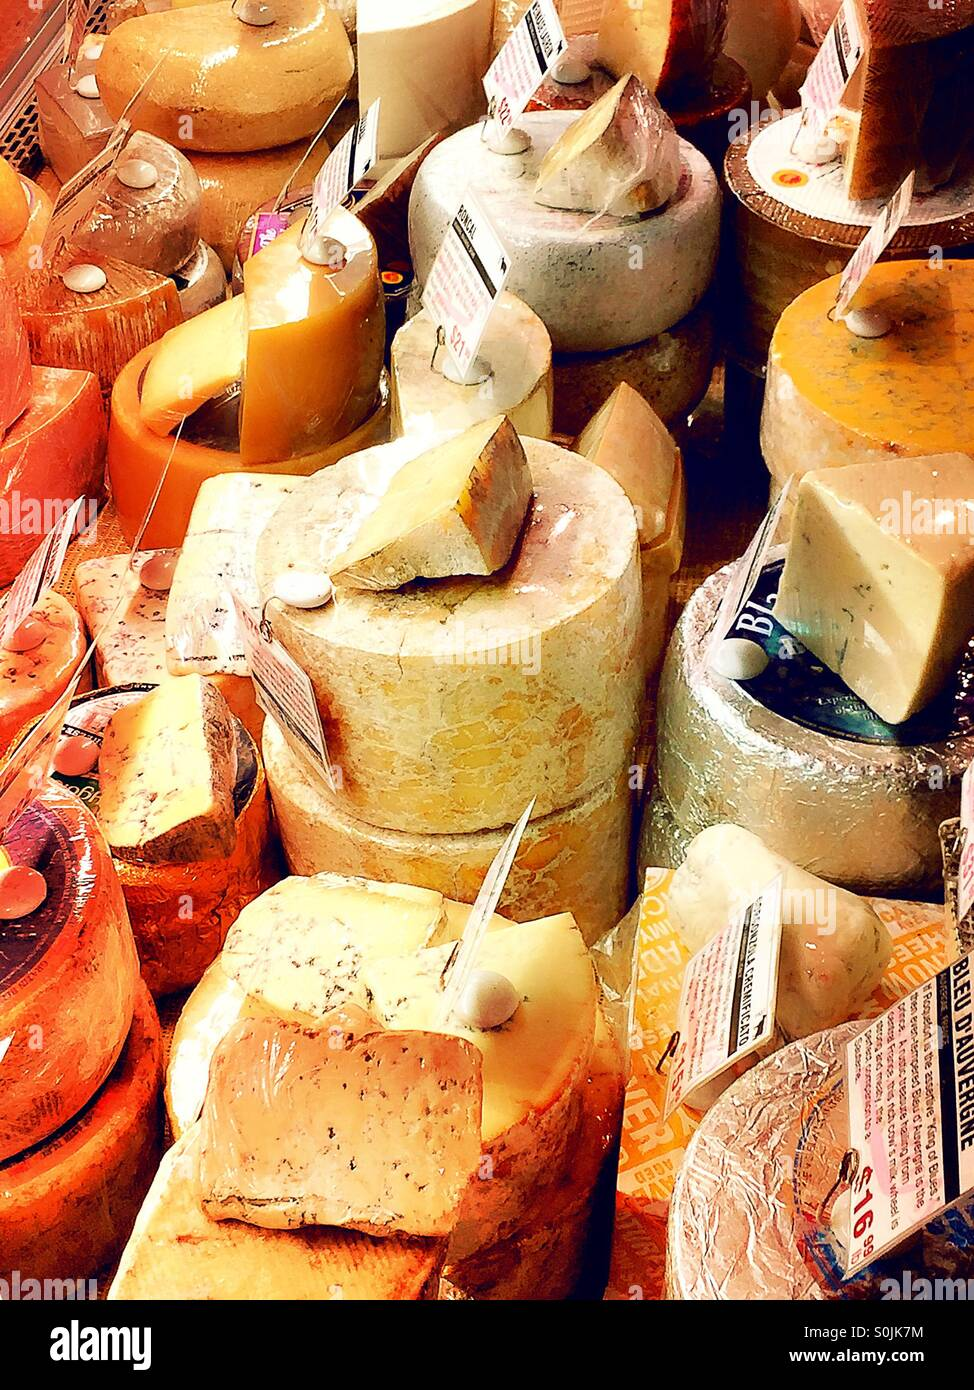 Cheese wheels and slices in a cheese shop display case. - Stock Image